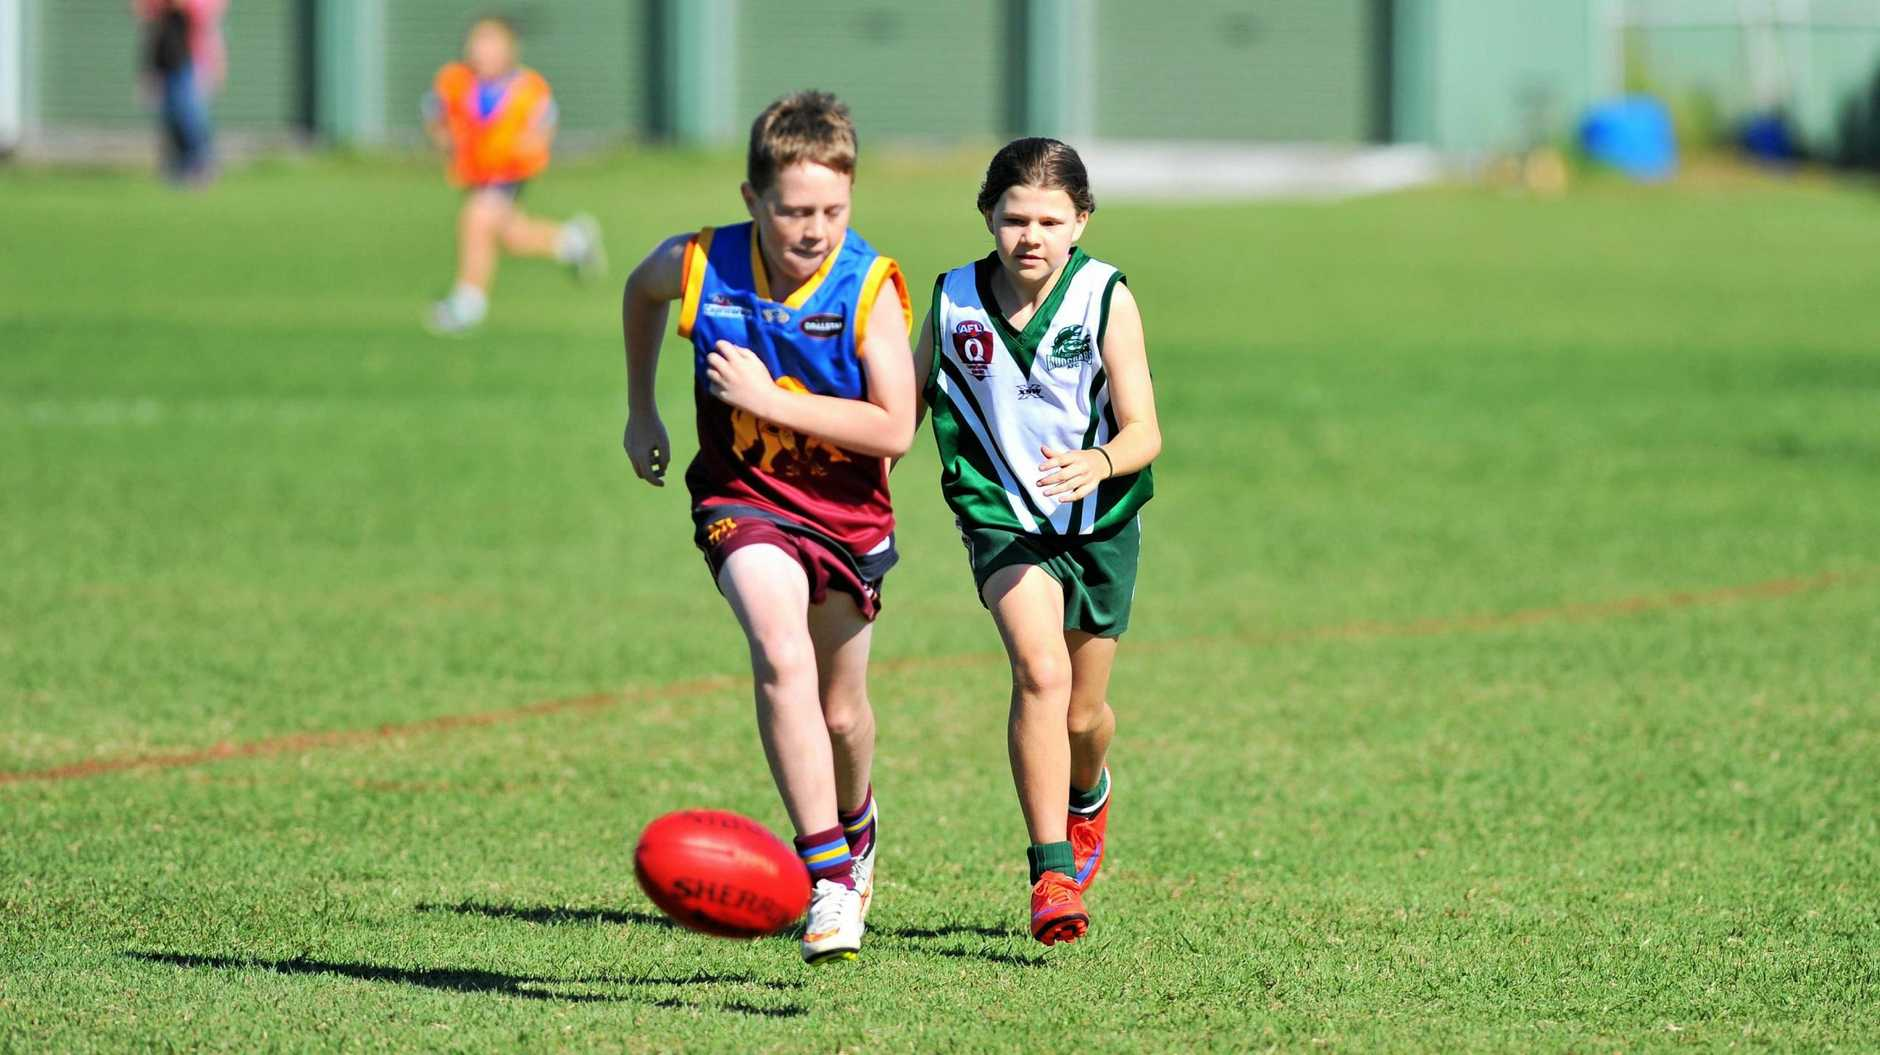 Tierney Burke playing for the Gladstone Mudcrabs against the Glenmore Bulls in the under-13s at Clinton Oval.  Photo Jake Jones / The Observer